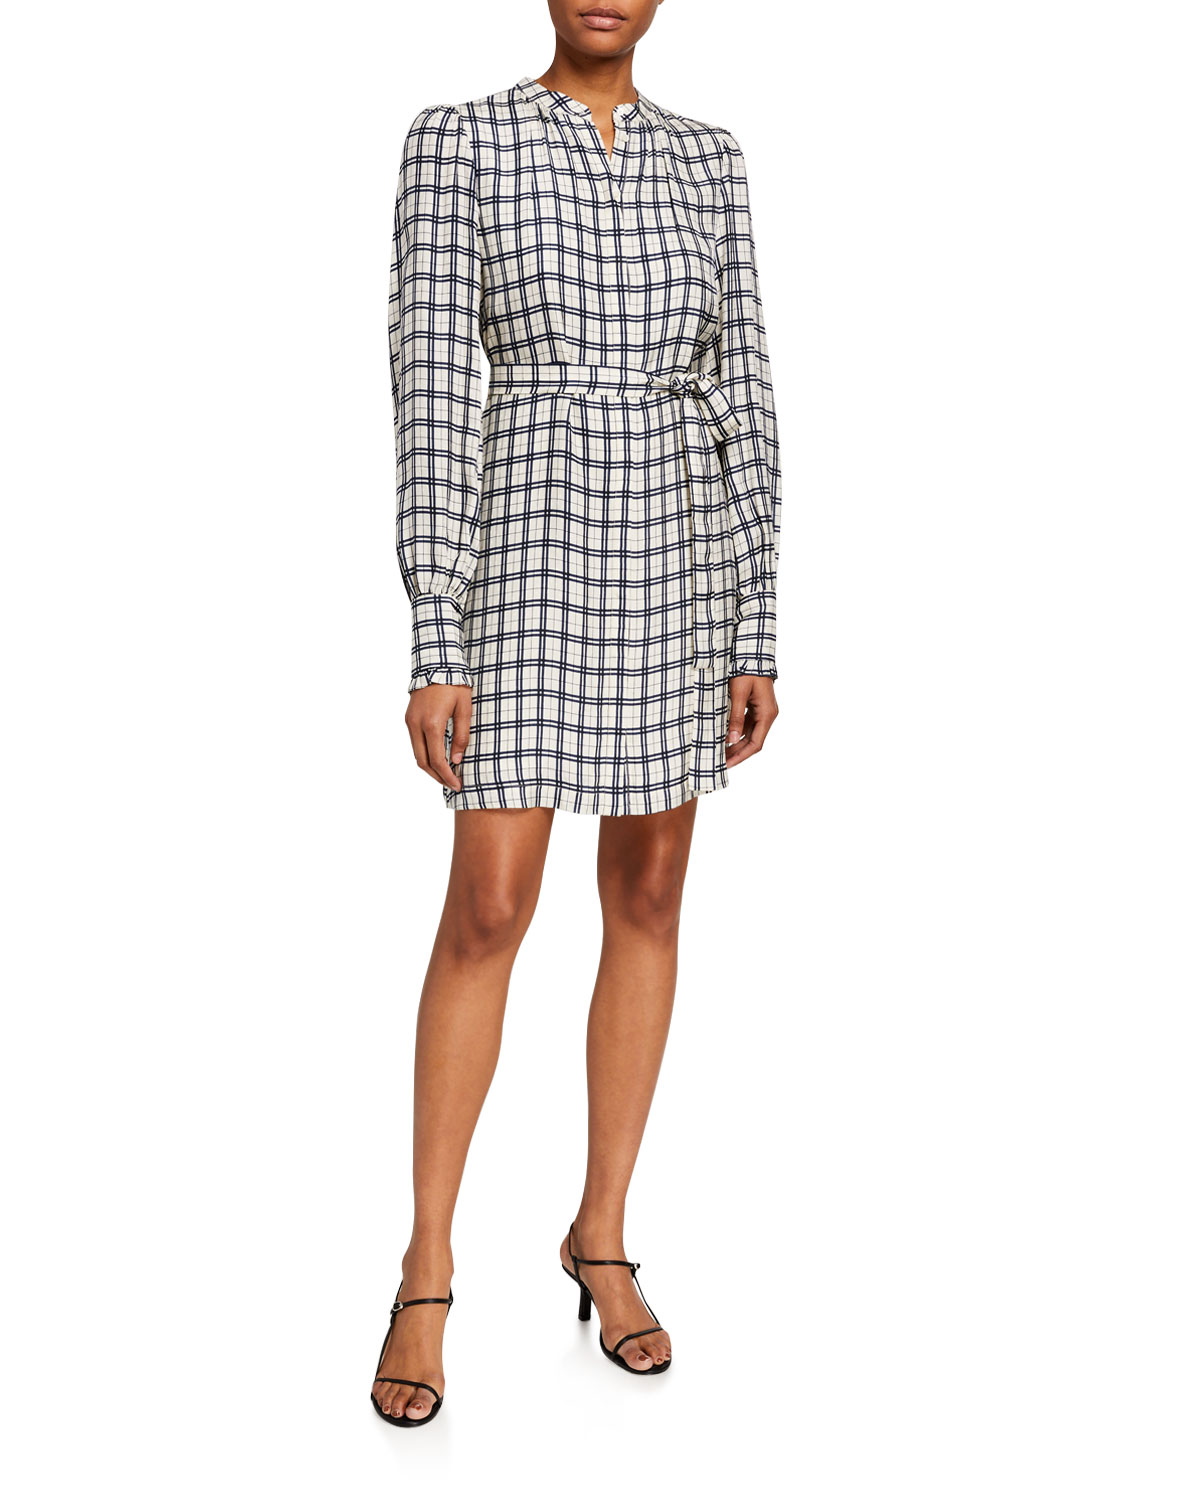 Joie Dresses BLANDINA CHECKED SHIRTDRESS